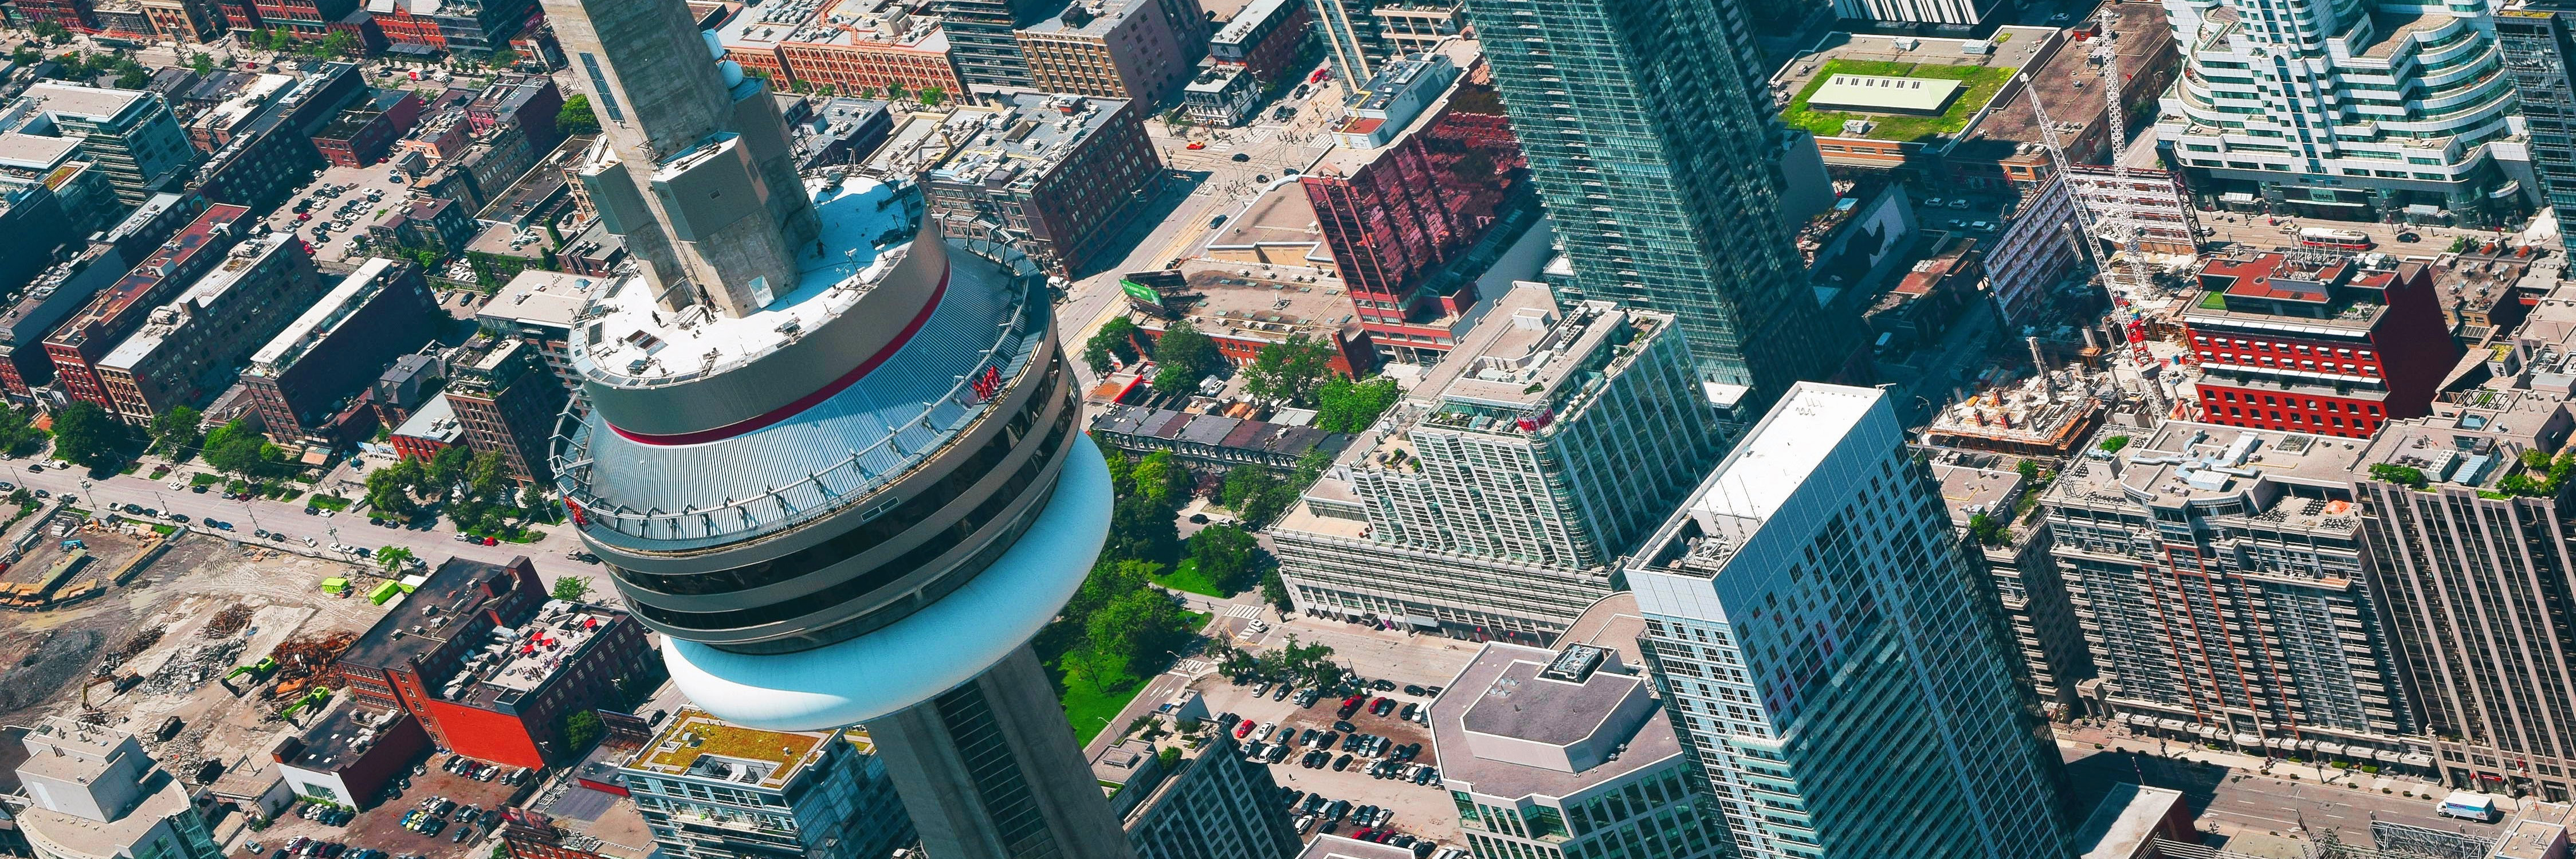 City of Toronto CN Tower aerial view